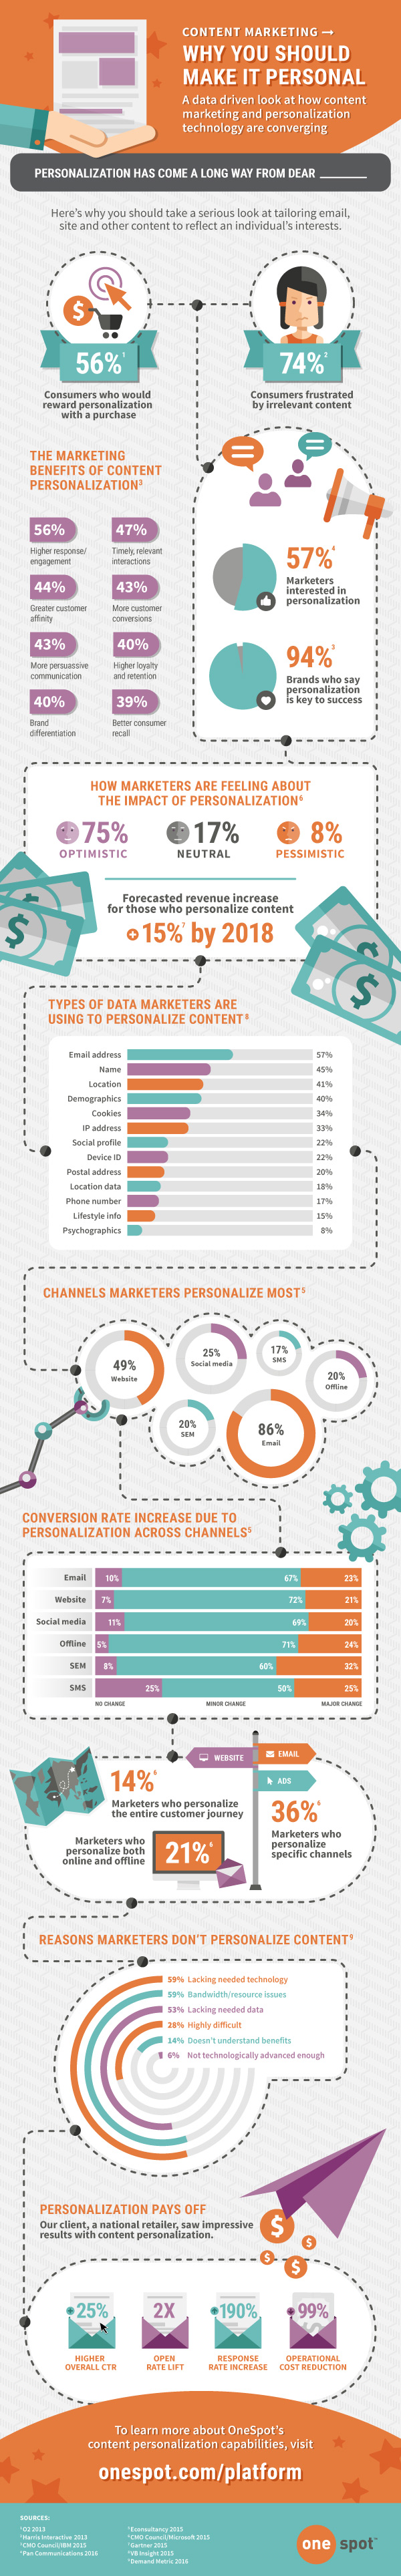 Infographic: Why Personalization Rules in Content Marketing